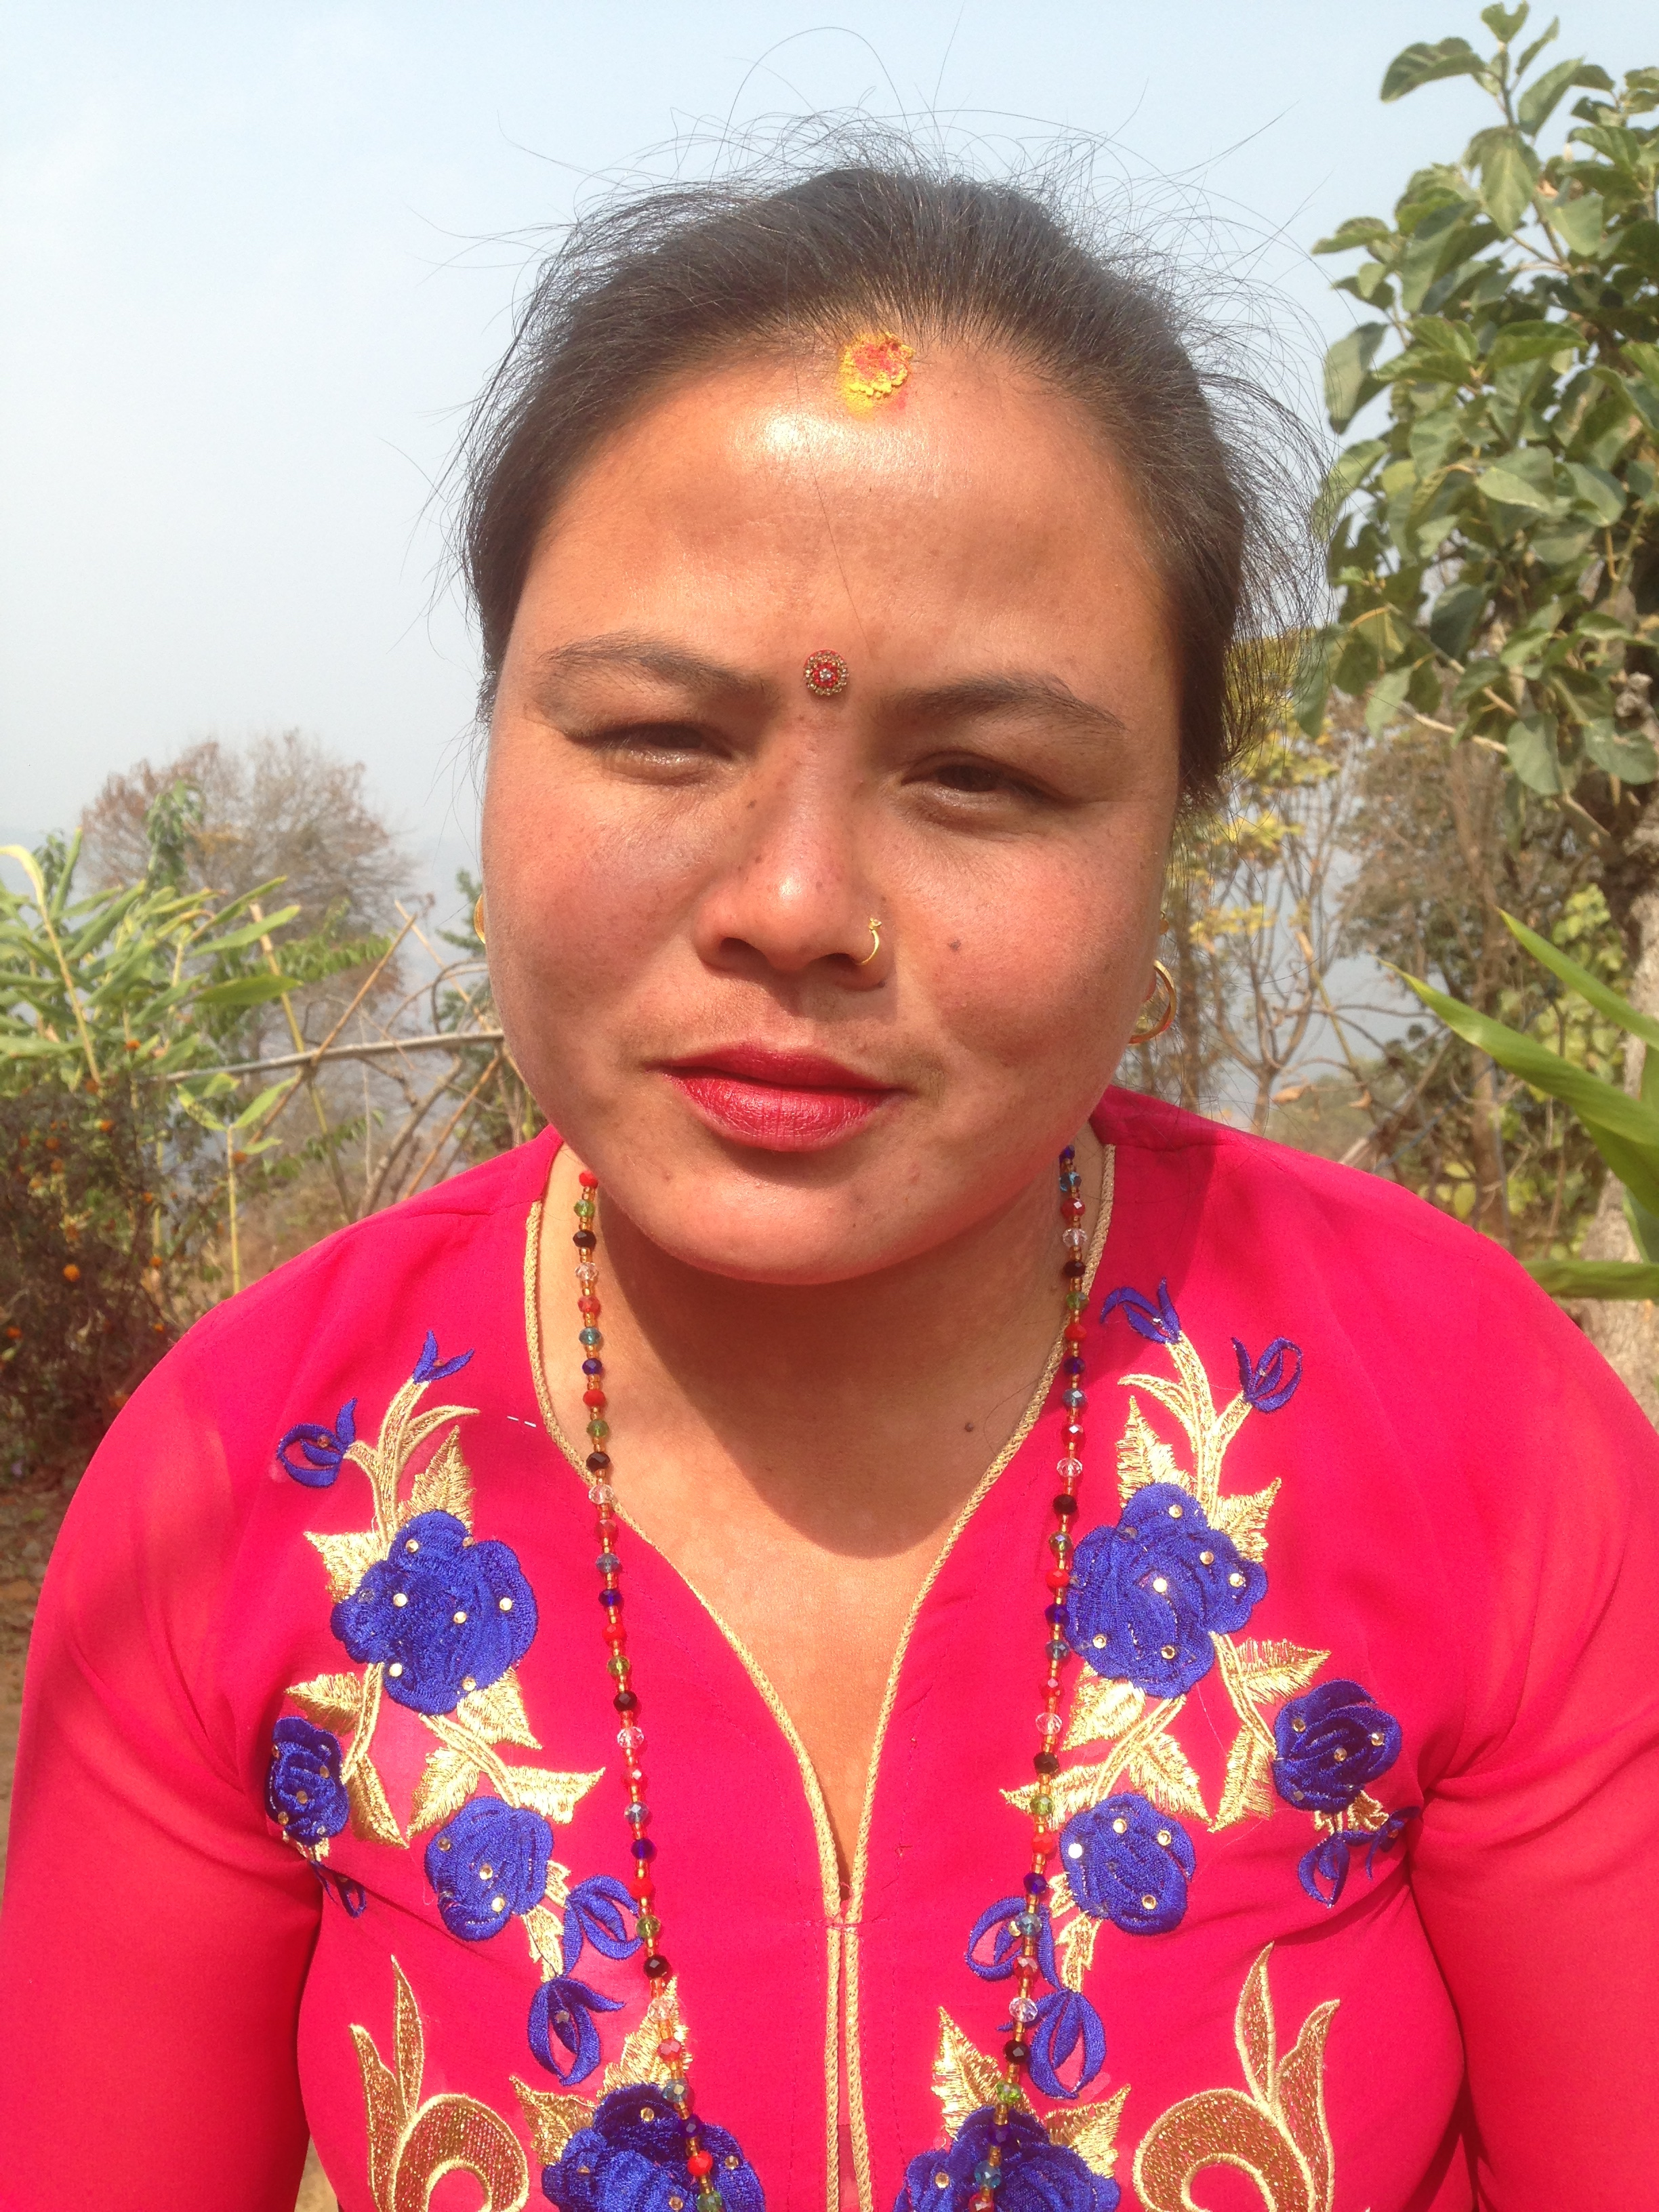 Ashmita Tamang,Plant Propagation Technician - Ashmita is from Arubhot, Dhulikhel-11. She has been working for Everything Organic since 2012.